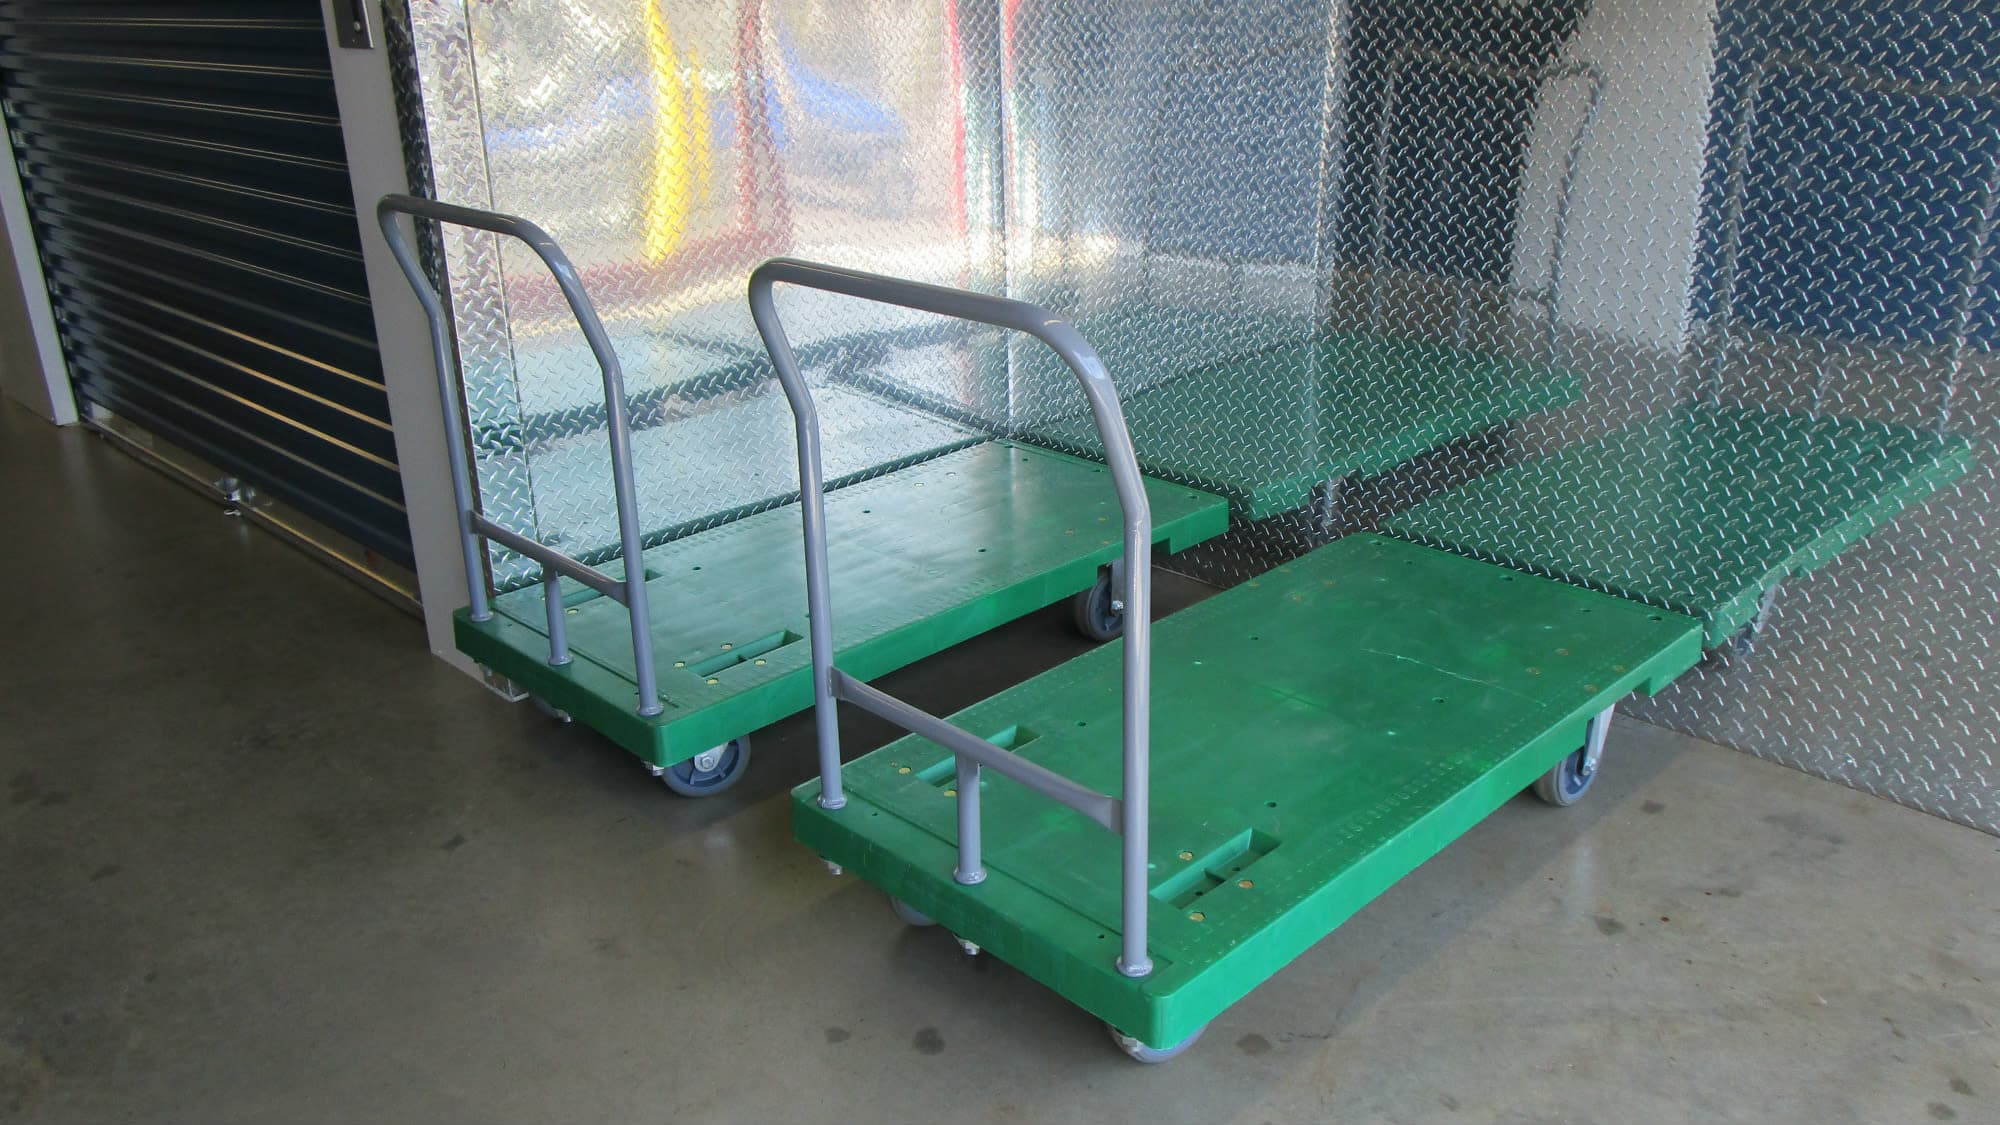 Carts available for use at Park 'N' Space Self Storage in Manassas, Virginia